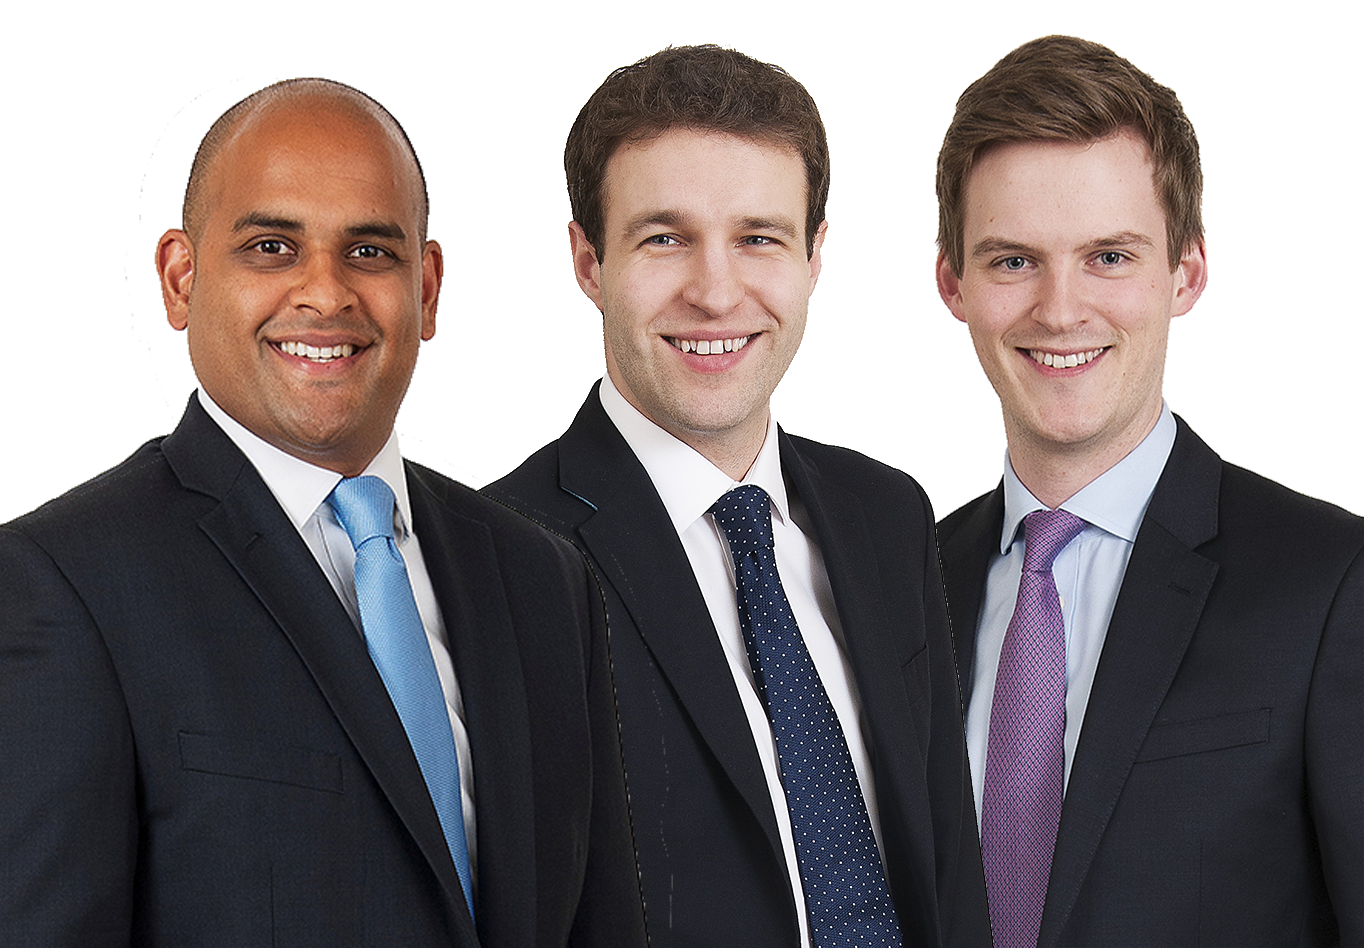 Harsha Wickremasinghe, Neil Smith and Lewis Gray